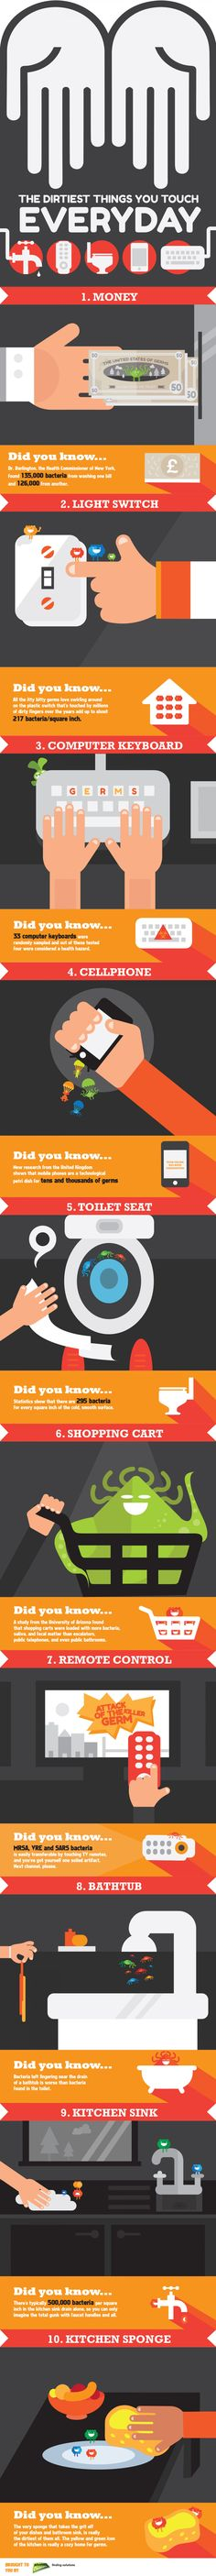 The Dirtiest Things You Touch Everyday - Infographic